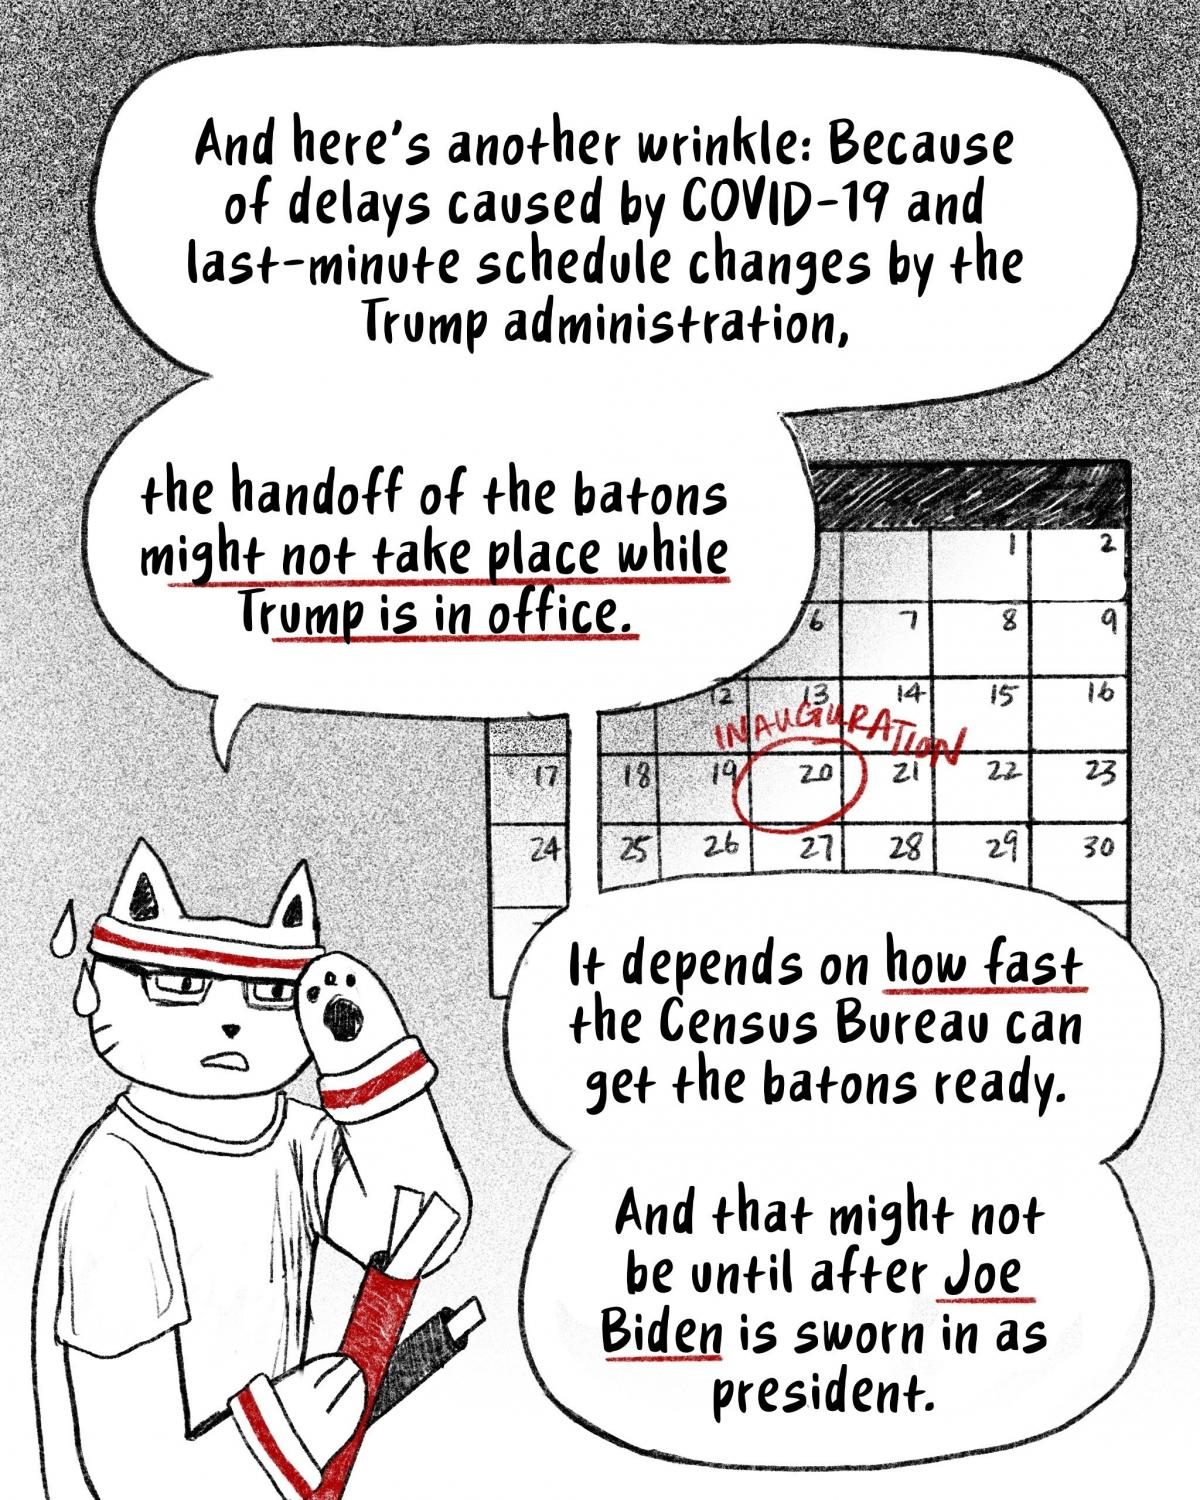 But the handoff of the batons might not happen while Trump is in office because of the pandemic and the Trump administration's schedule changes. It depends on how fast the bureau can get the batons ready. [Image description- Hansi sweating while holding b